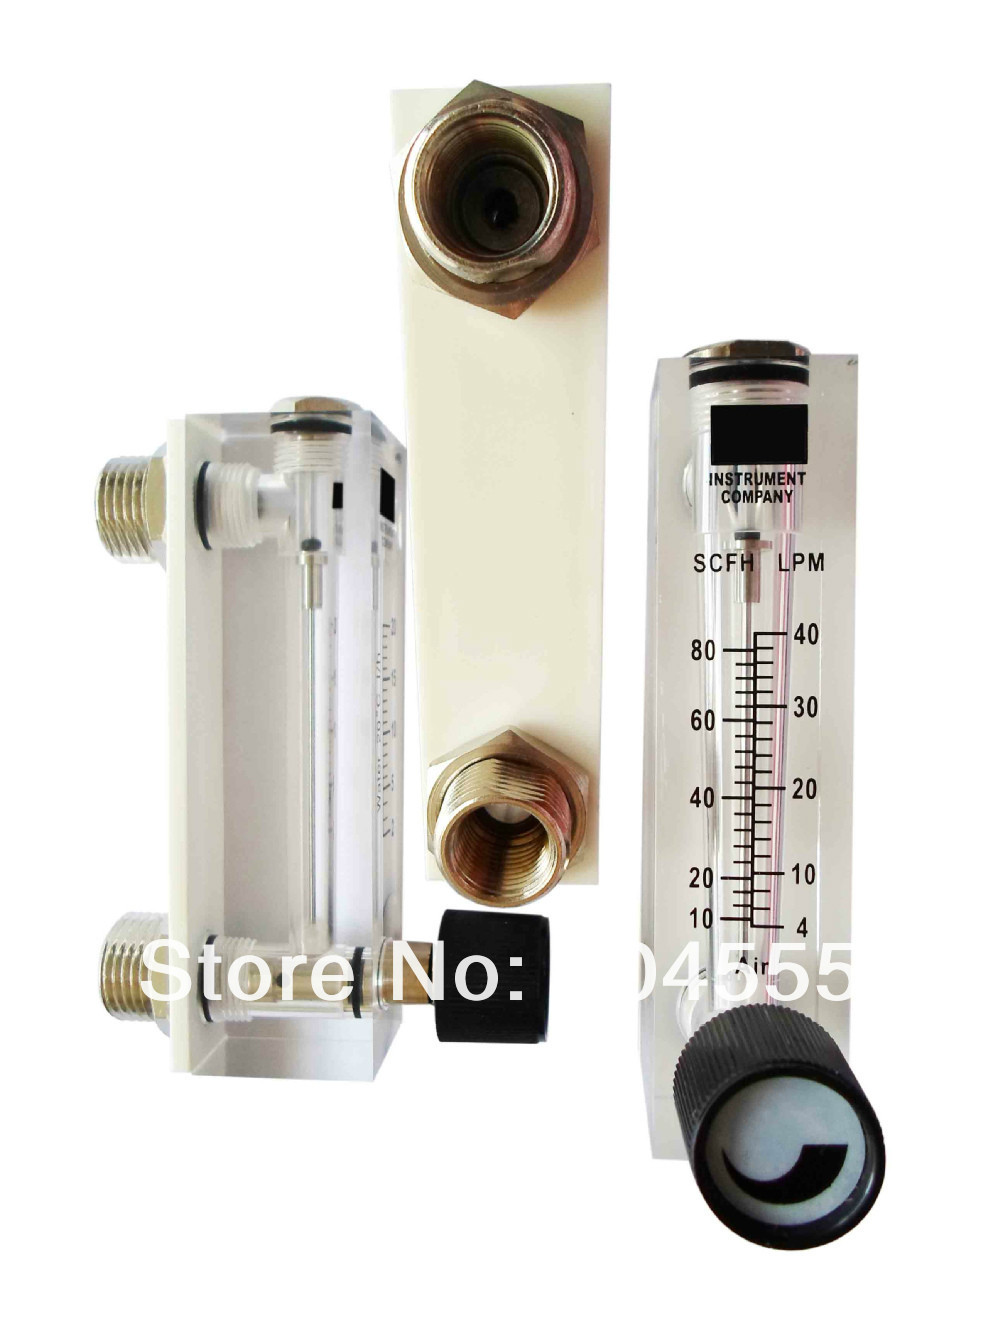 Panel water flow controller water flow meter liquid flowmeter with adjustable valve 2-20L/Hour water flow meter цены